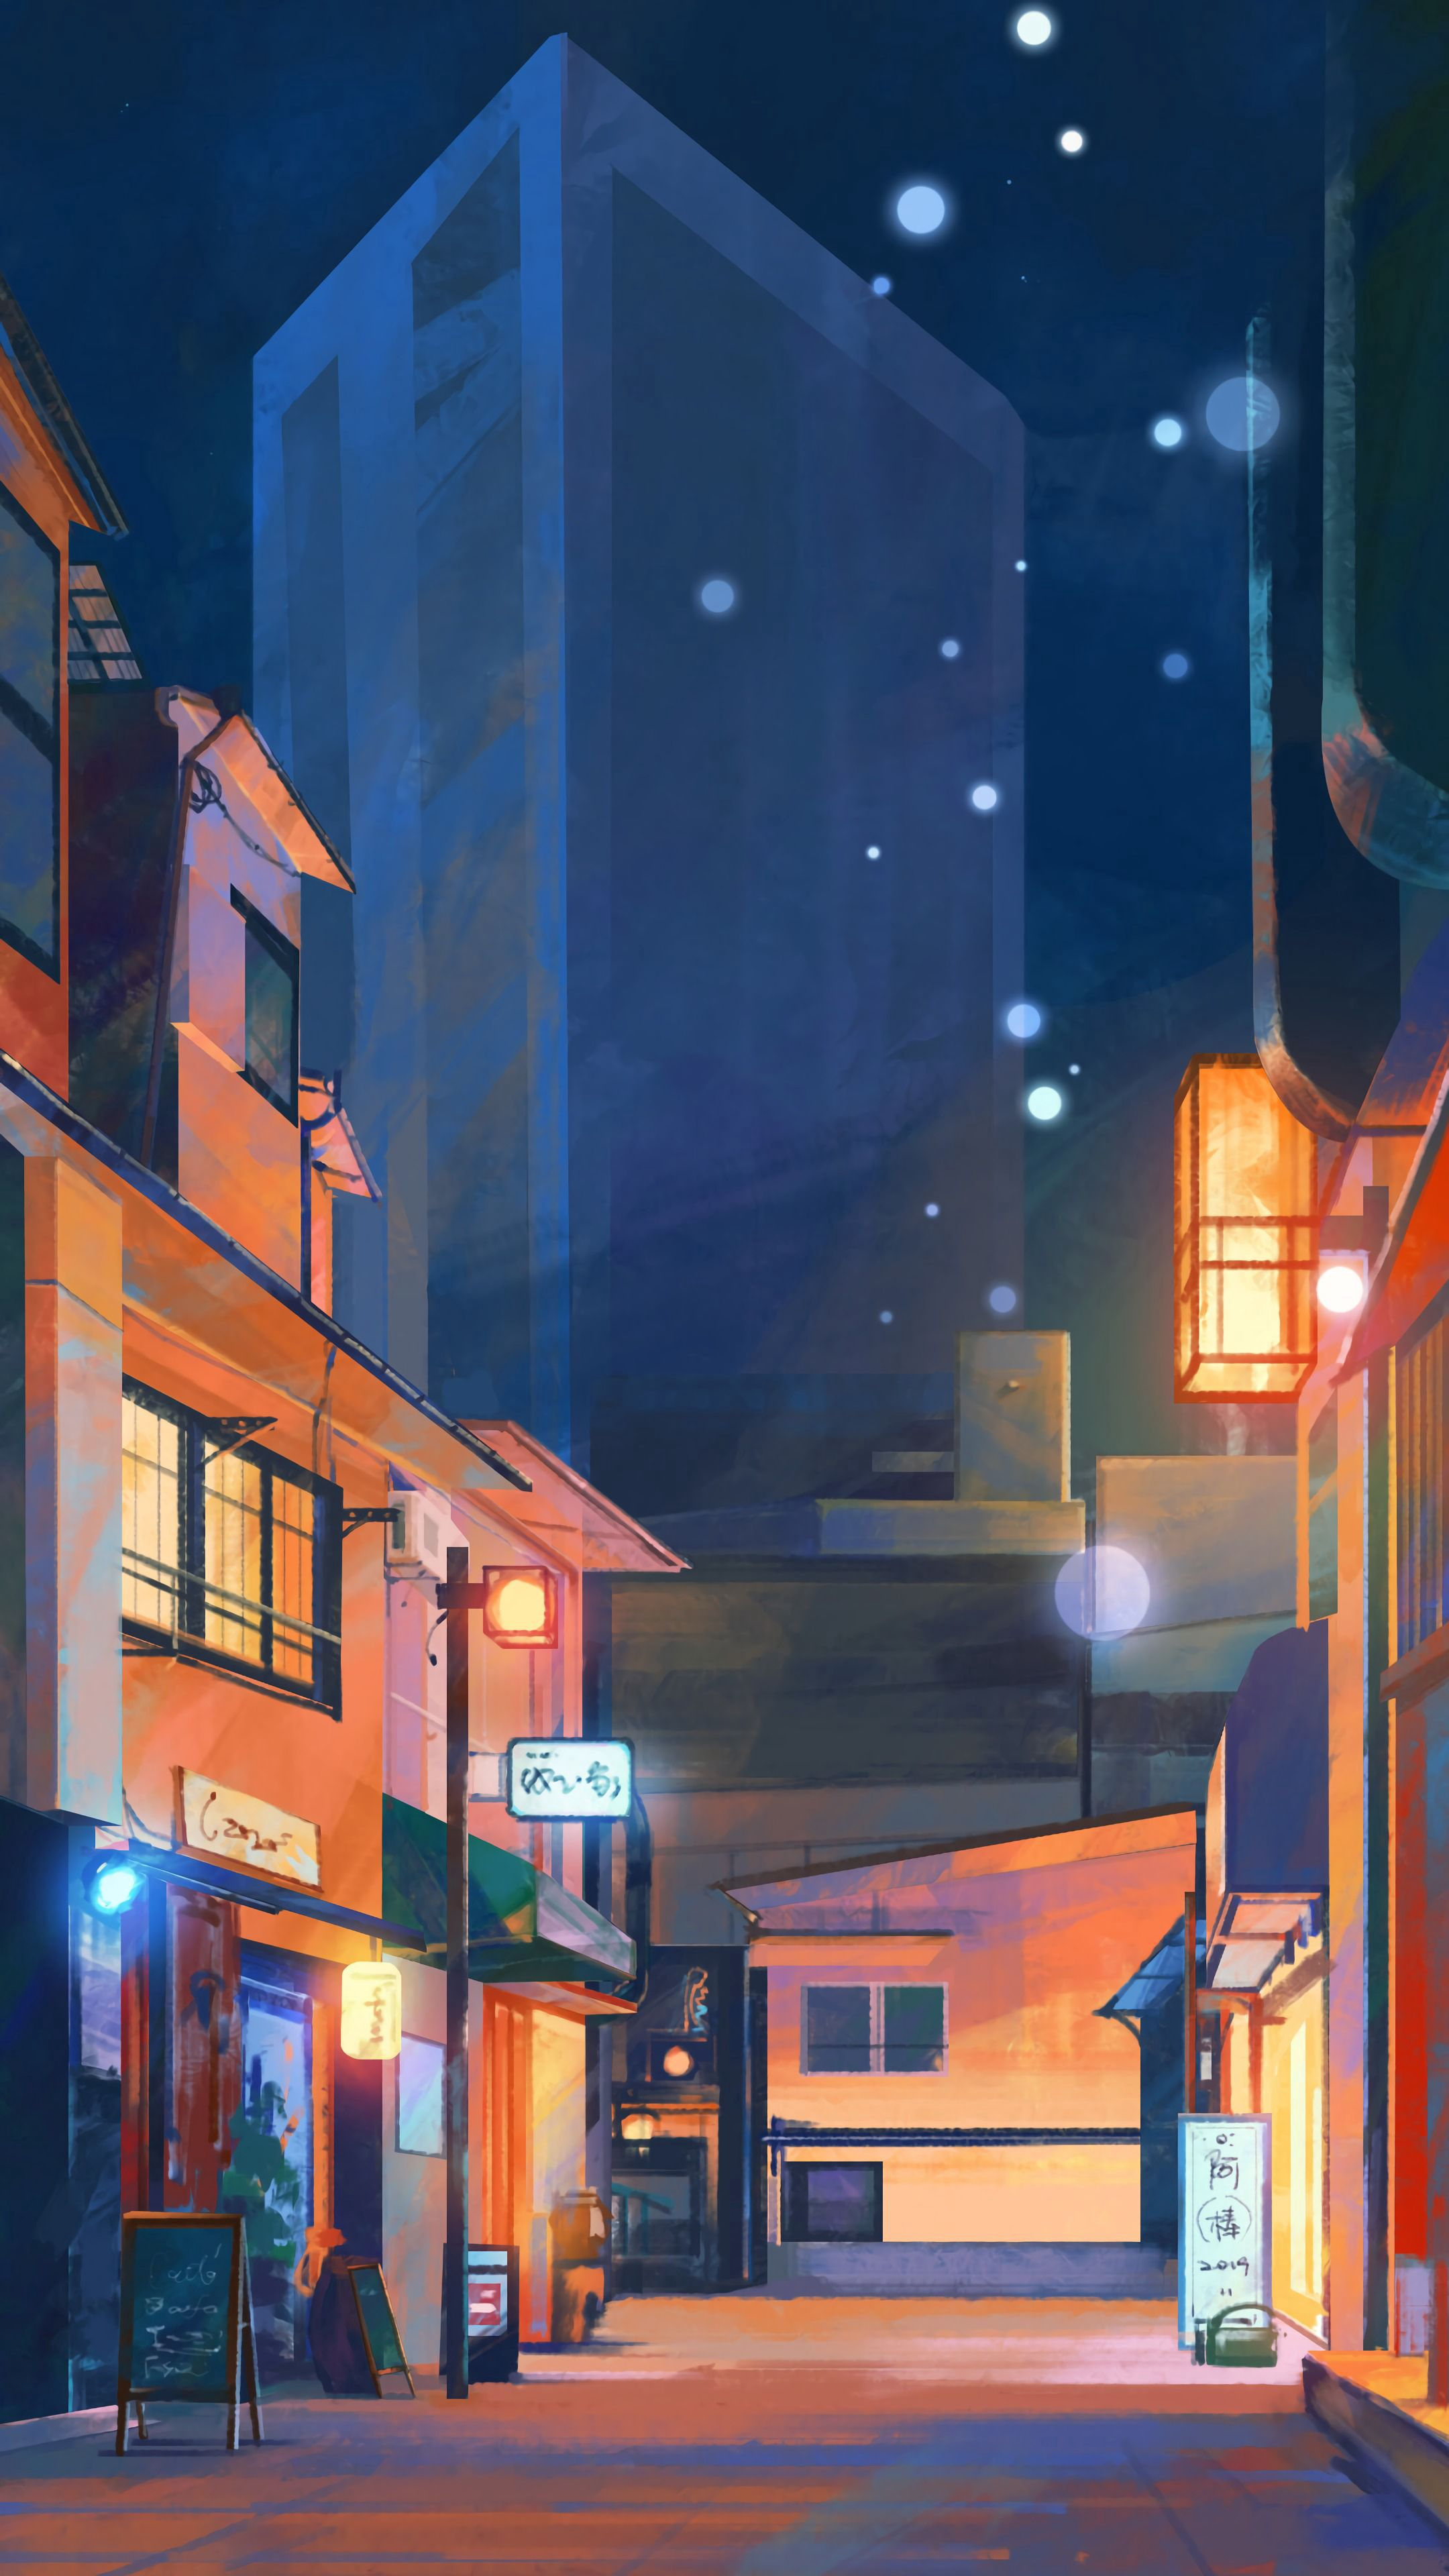 70020 download wallpaper Art, Night, City, Paint screensavers and pictures for free